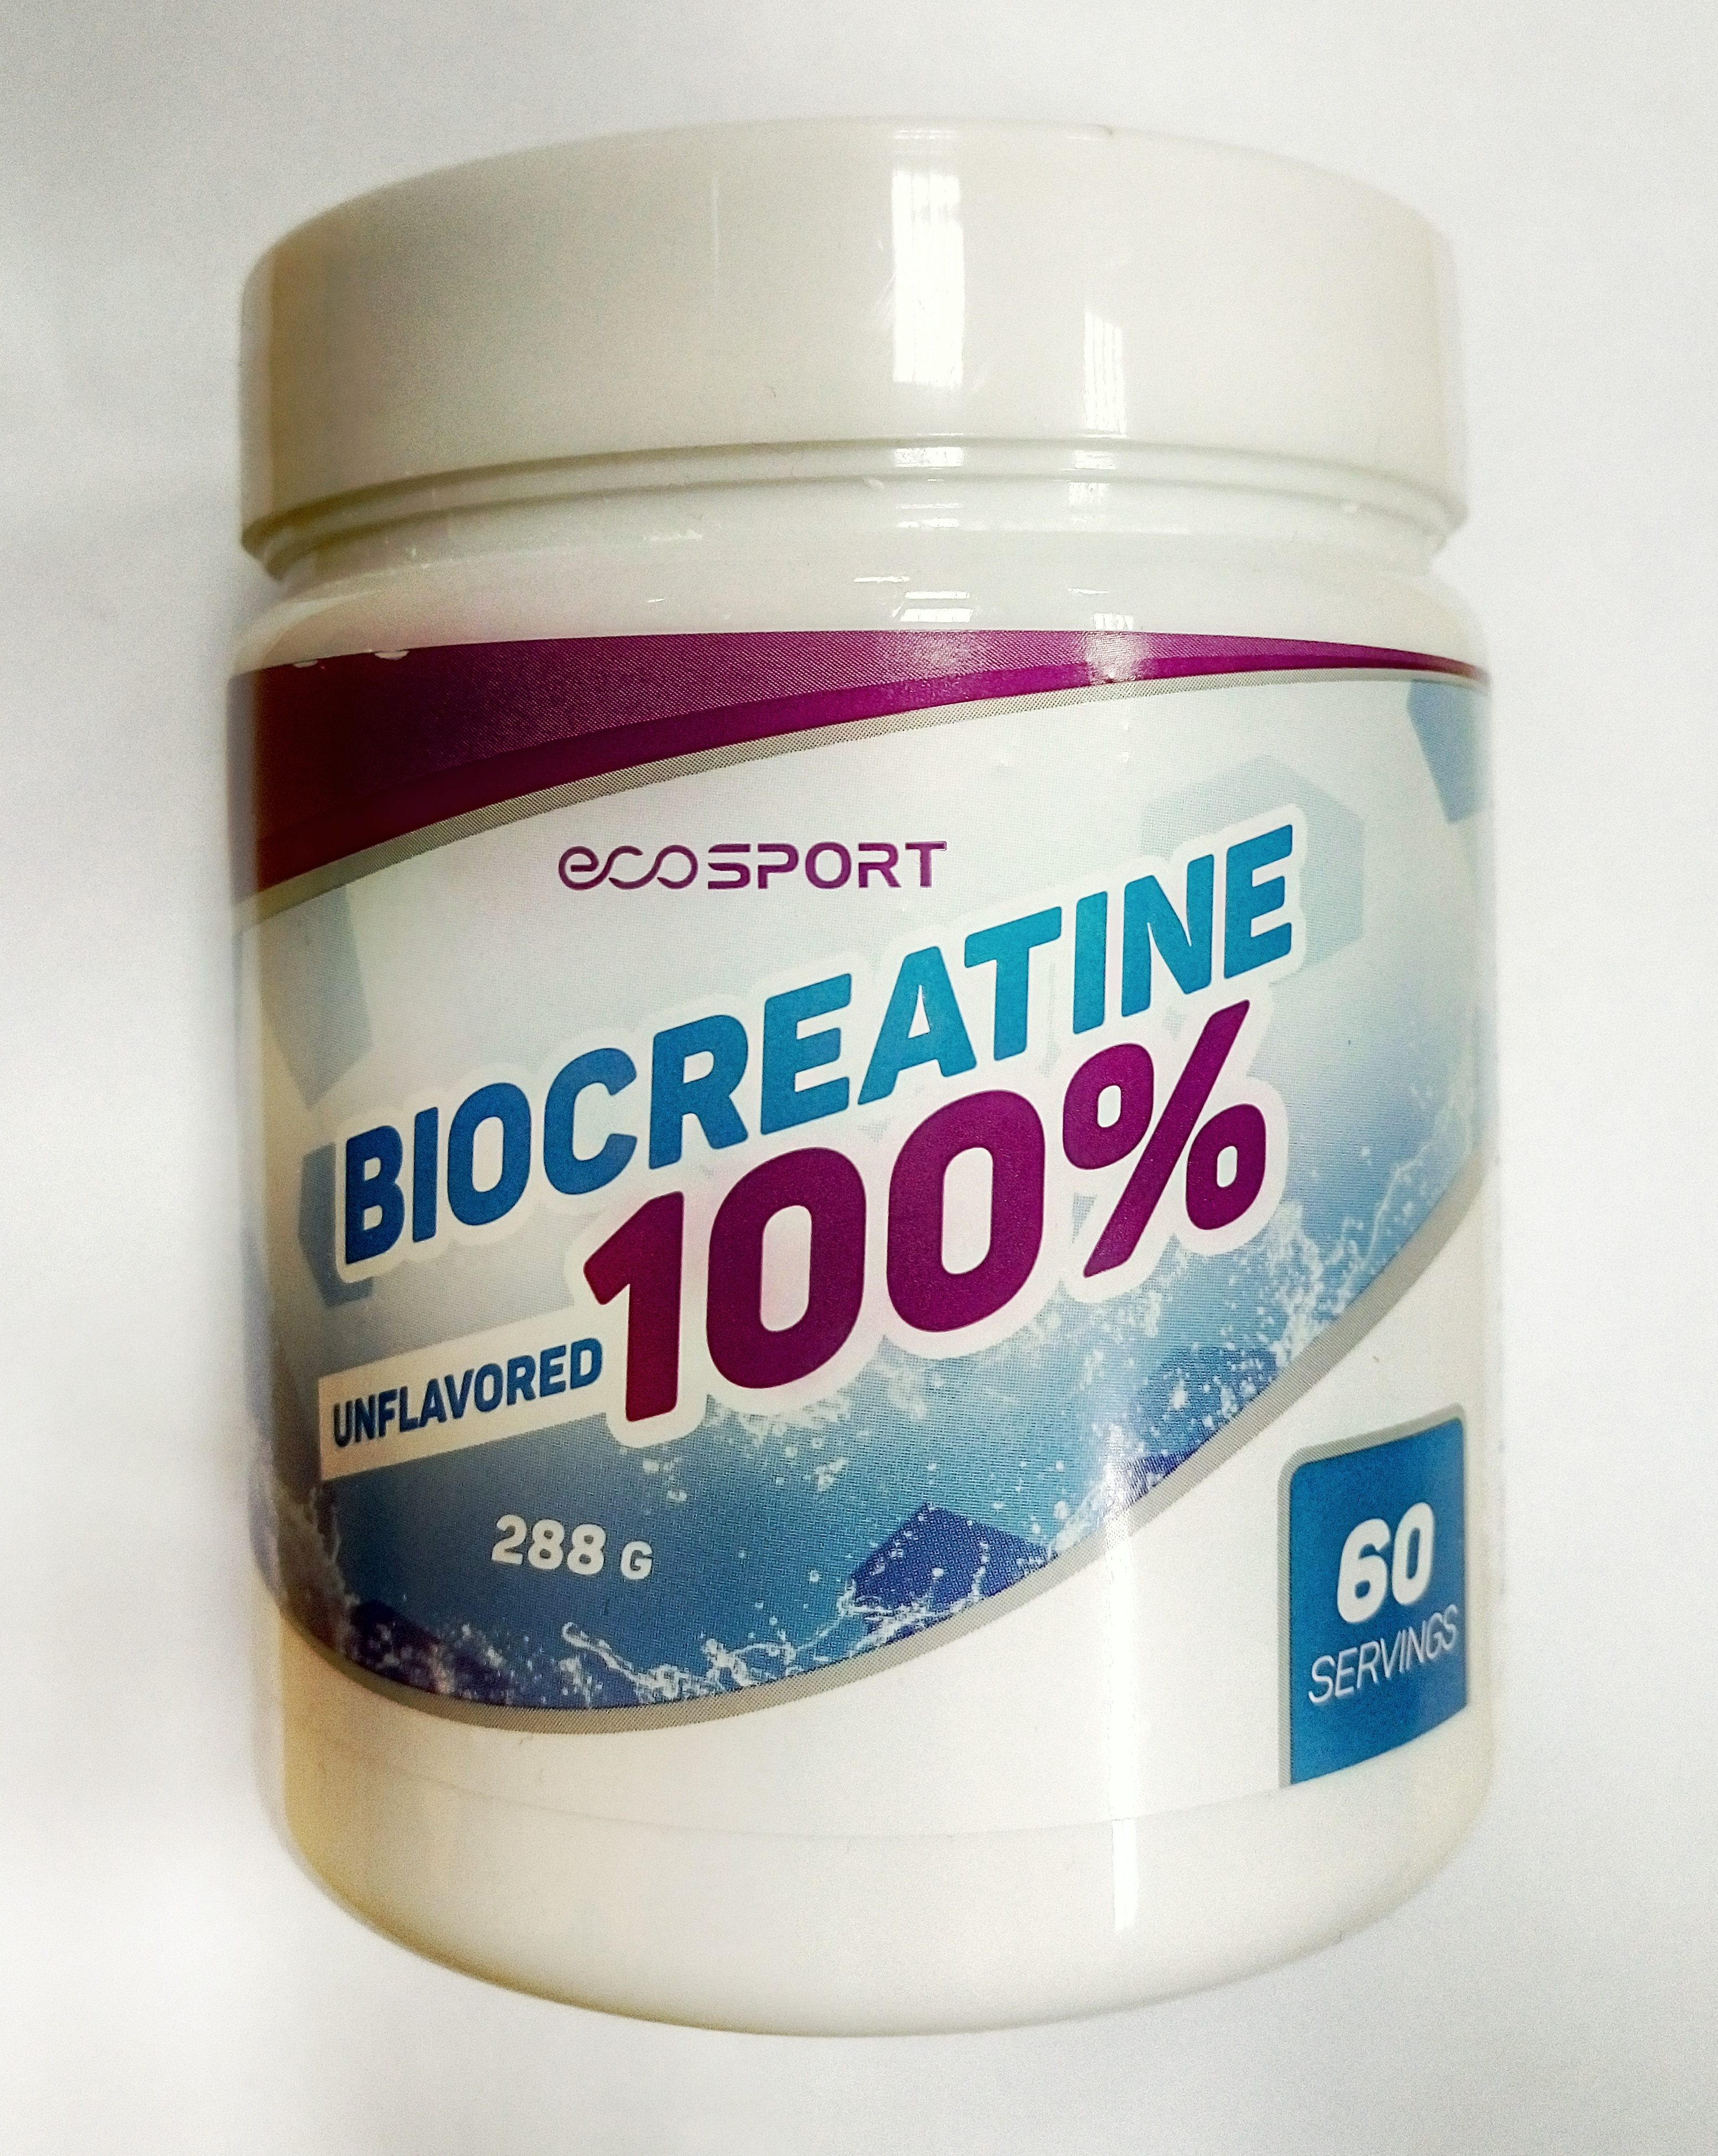 Biocreatine 100%